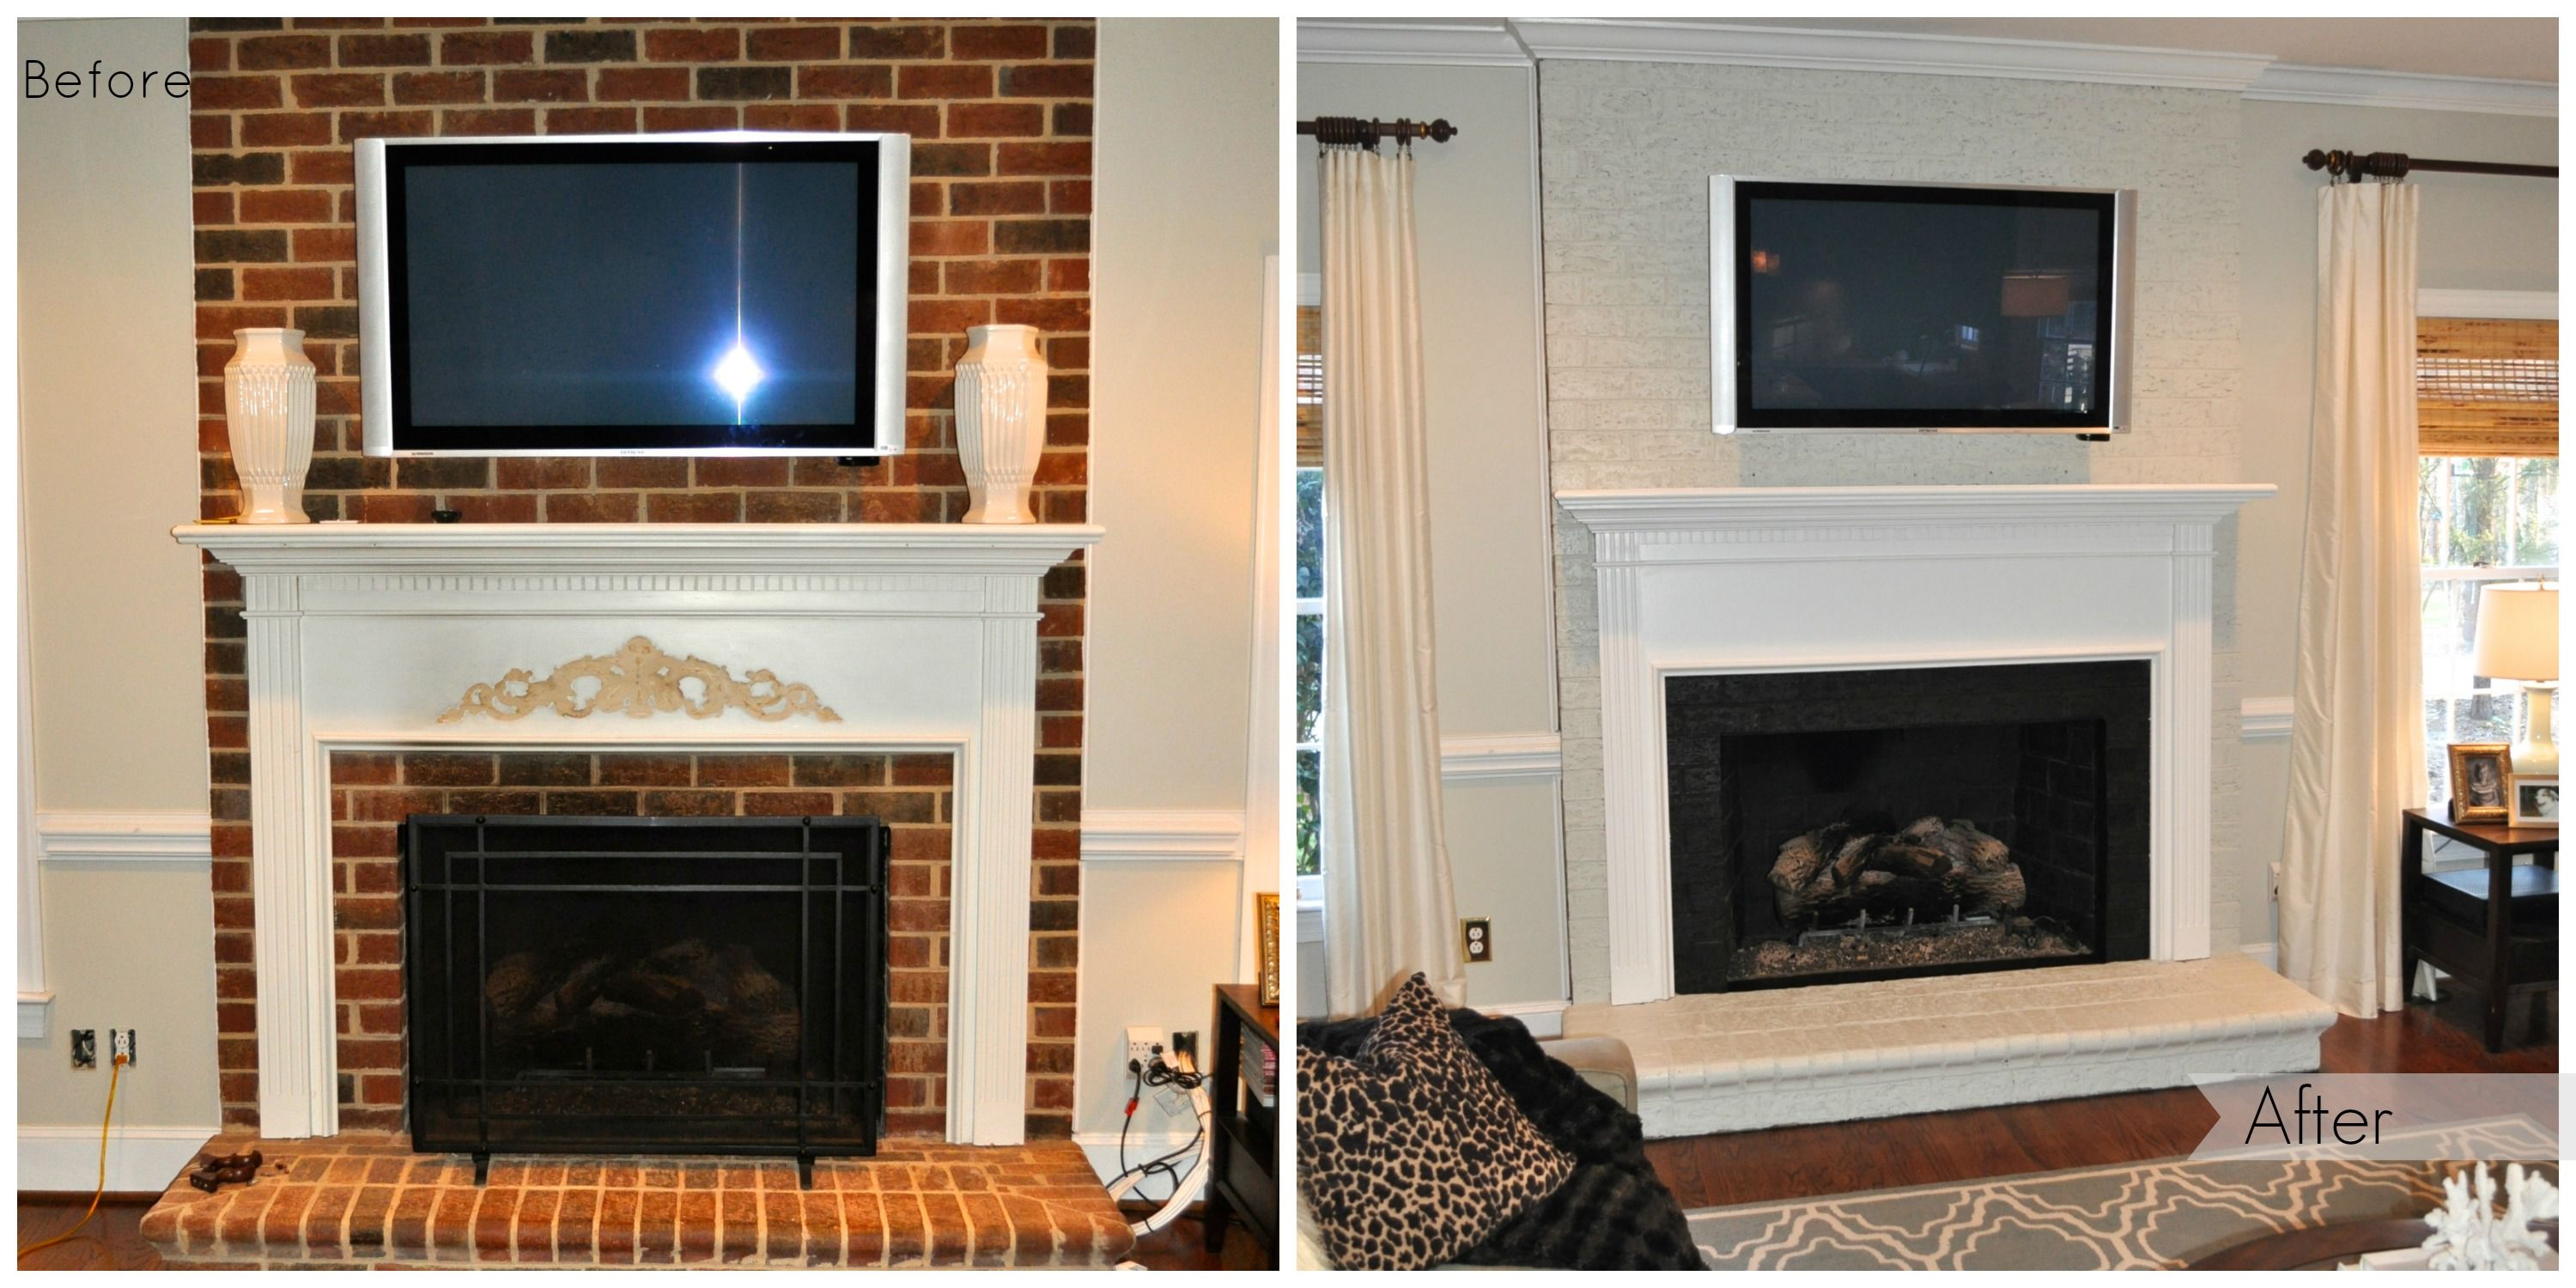 Painted brick fireplace before u after paint the brick the same